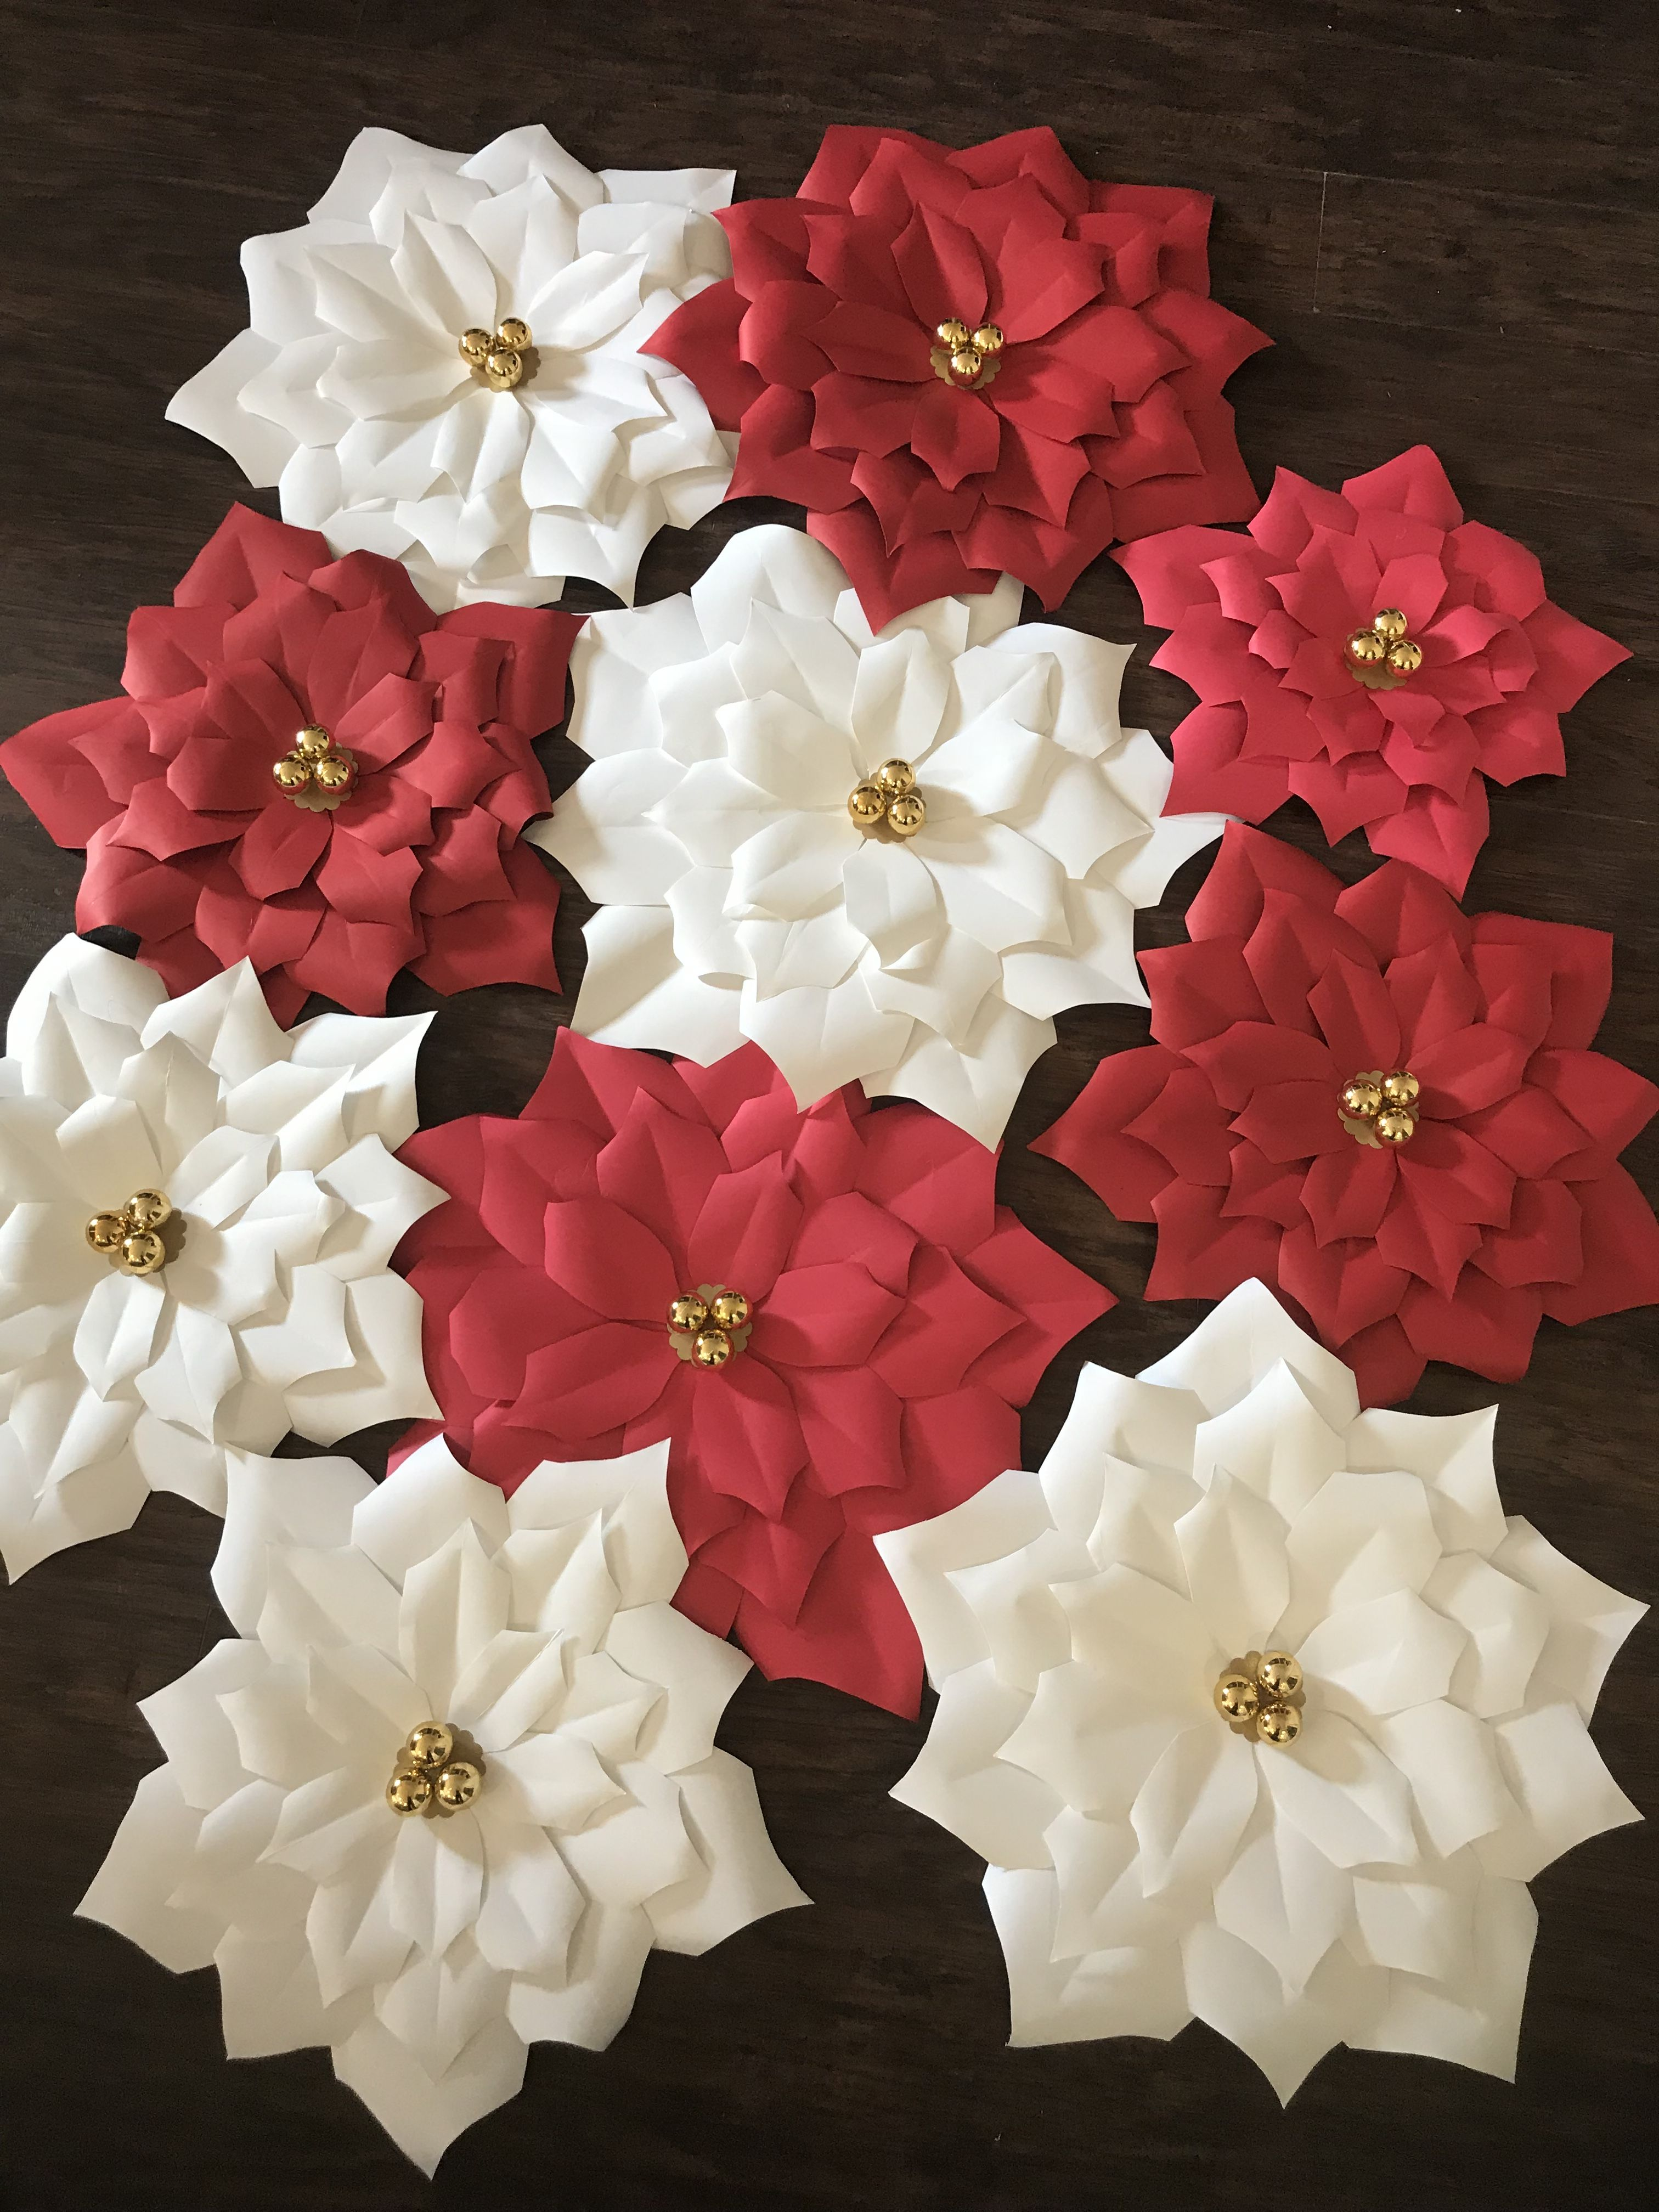 Poinsettia Paper Flowers Large 22 Medium 17 And Small 15 Getting Ready For The Holiday Paper Flowers Paper Flowers Craft Christmas Crafts Diy Decoration